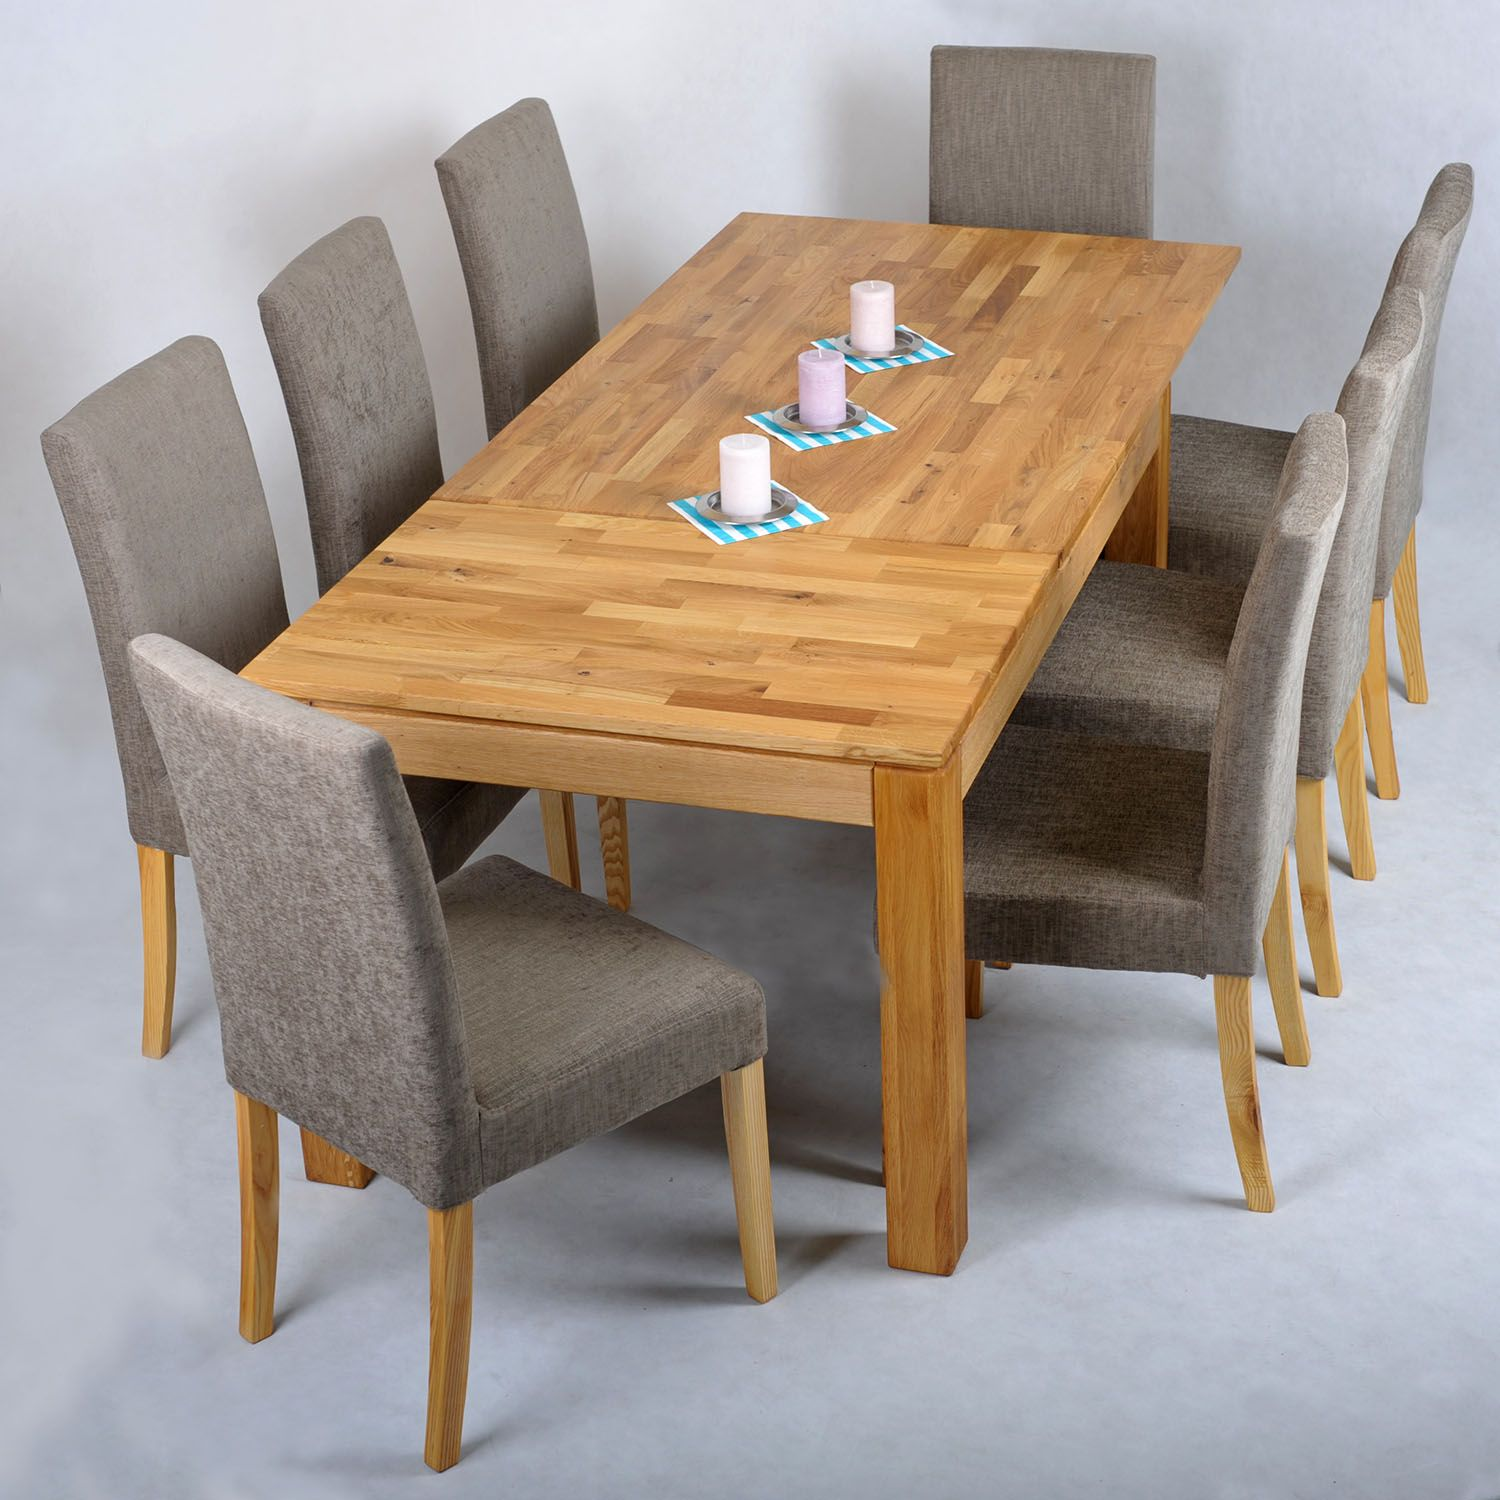 Amazing Modern Stylish Dining Room Table Set Designs Elite Tangent Glass  Top Furniture Stores With Tables. Online Interior Design. What Is Interioru2026